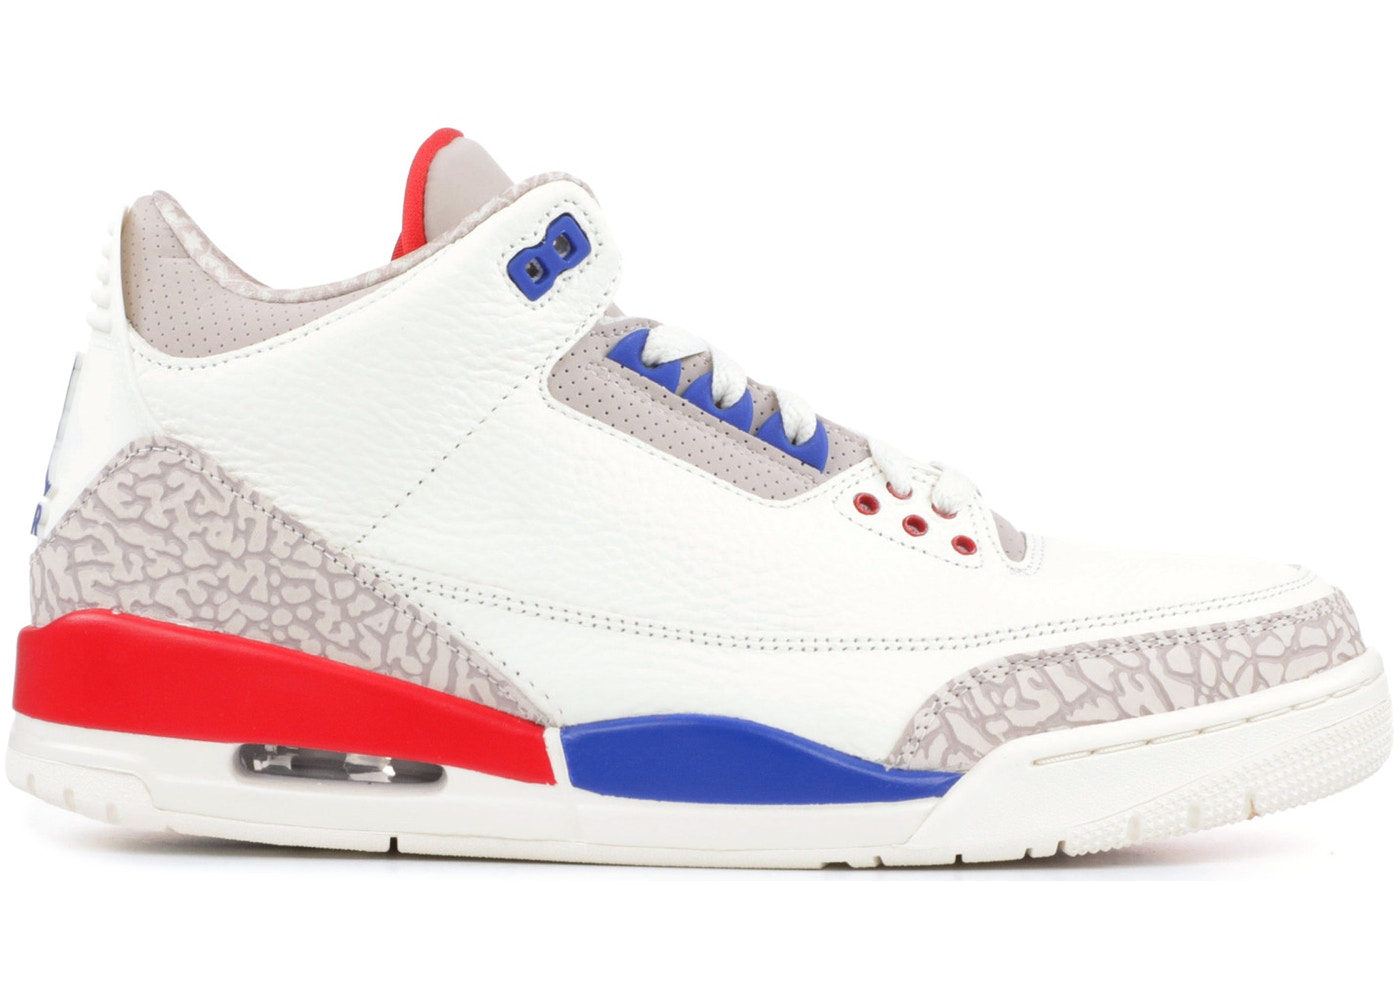 outlet store 454c7 f5a3f Buy Air Jordan 3 Shoes & Deadstock Sneakers